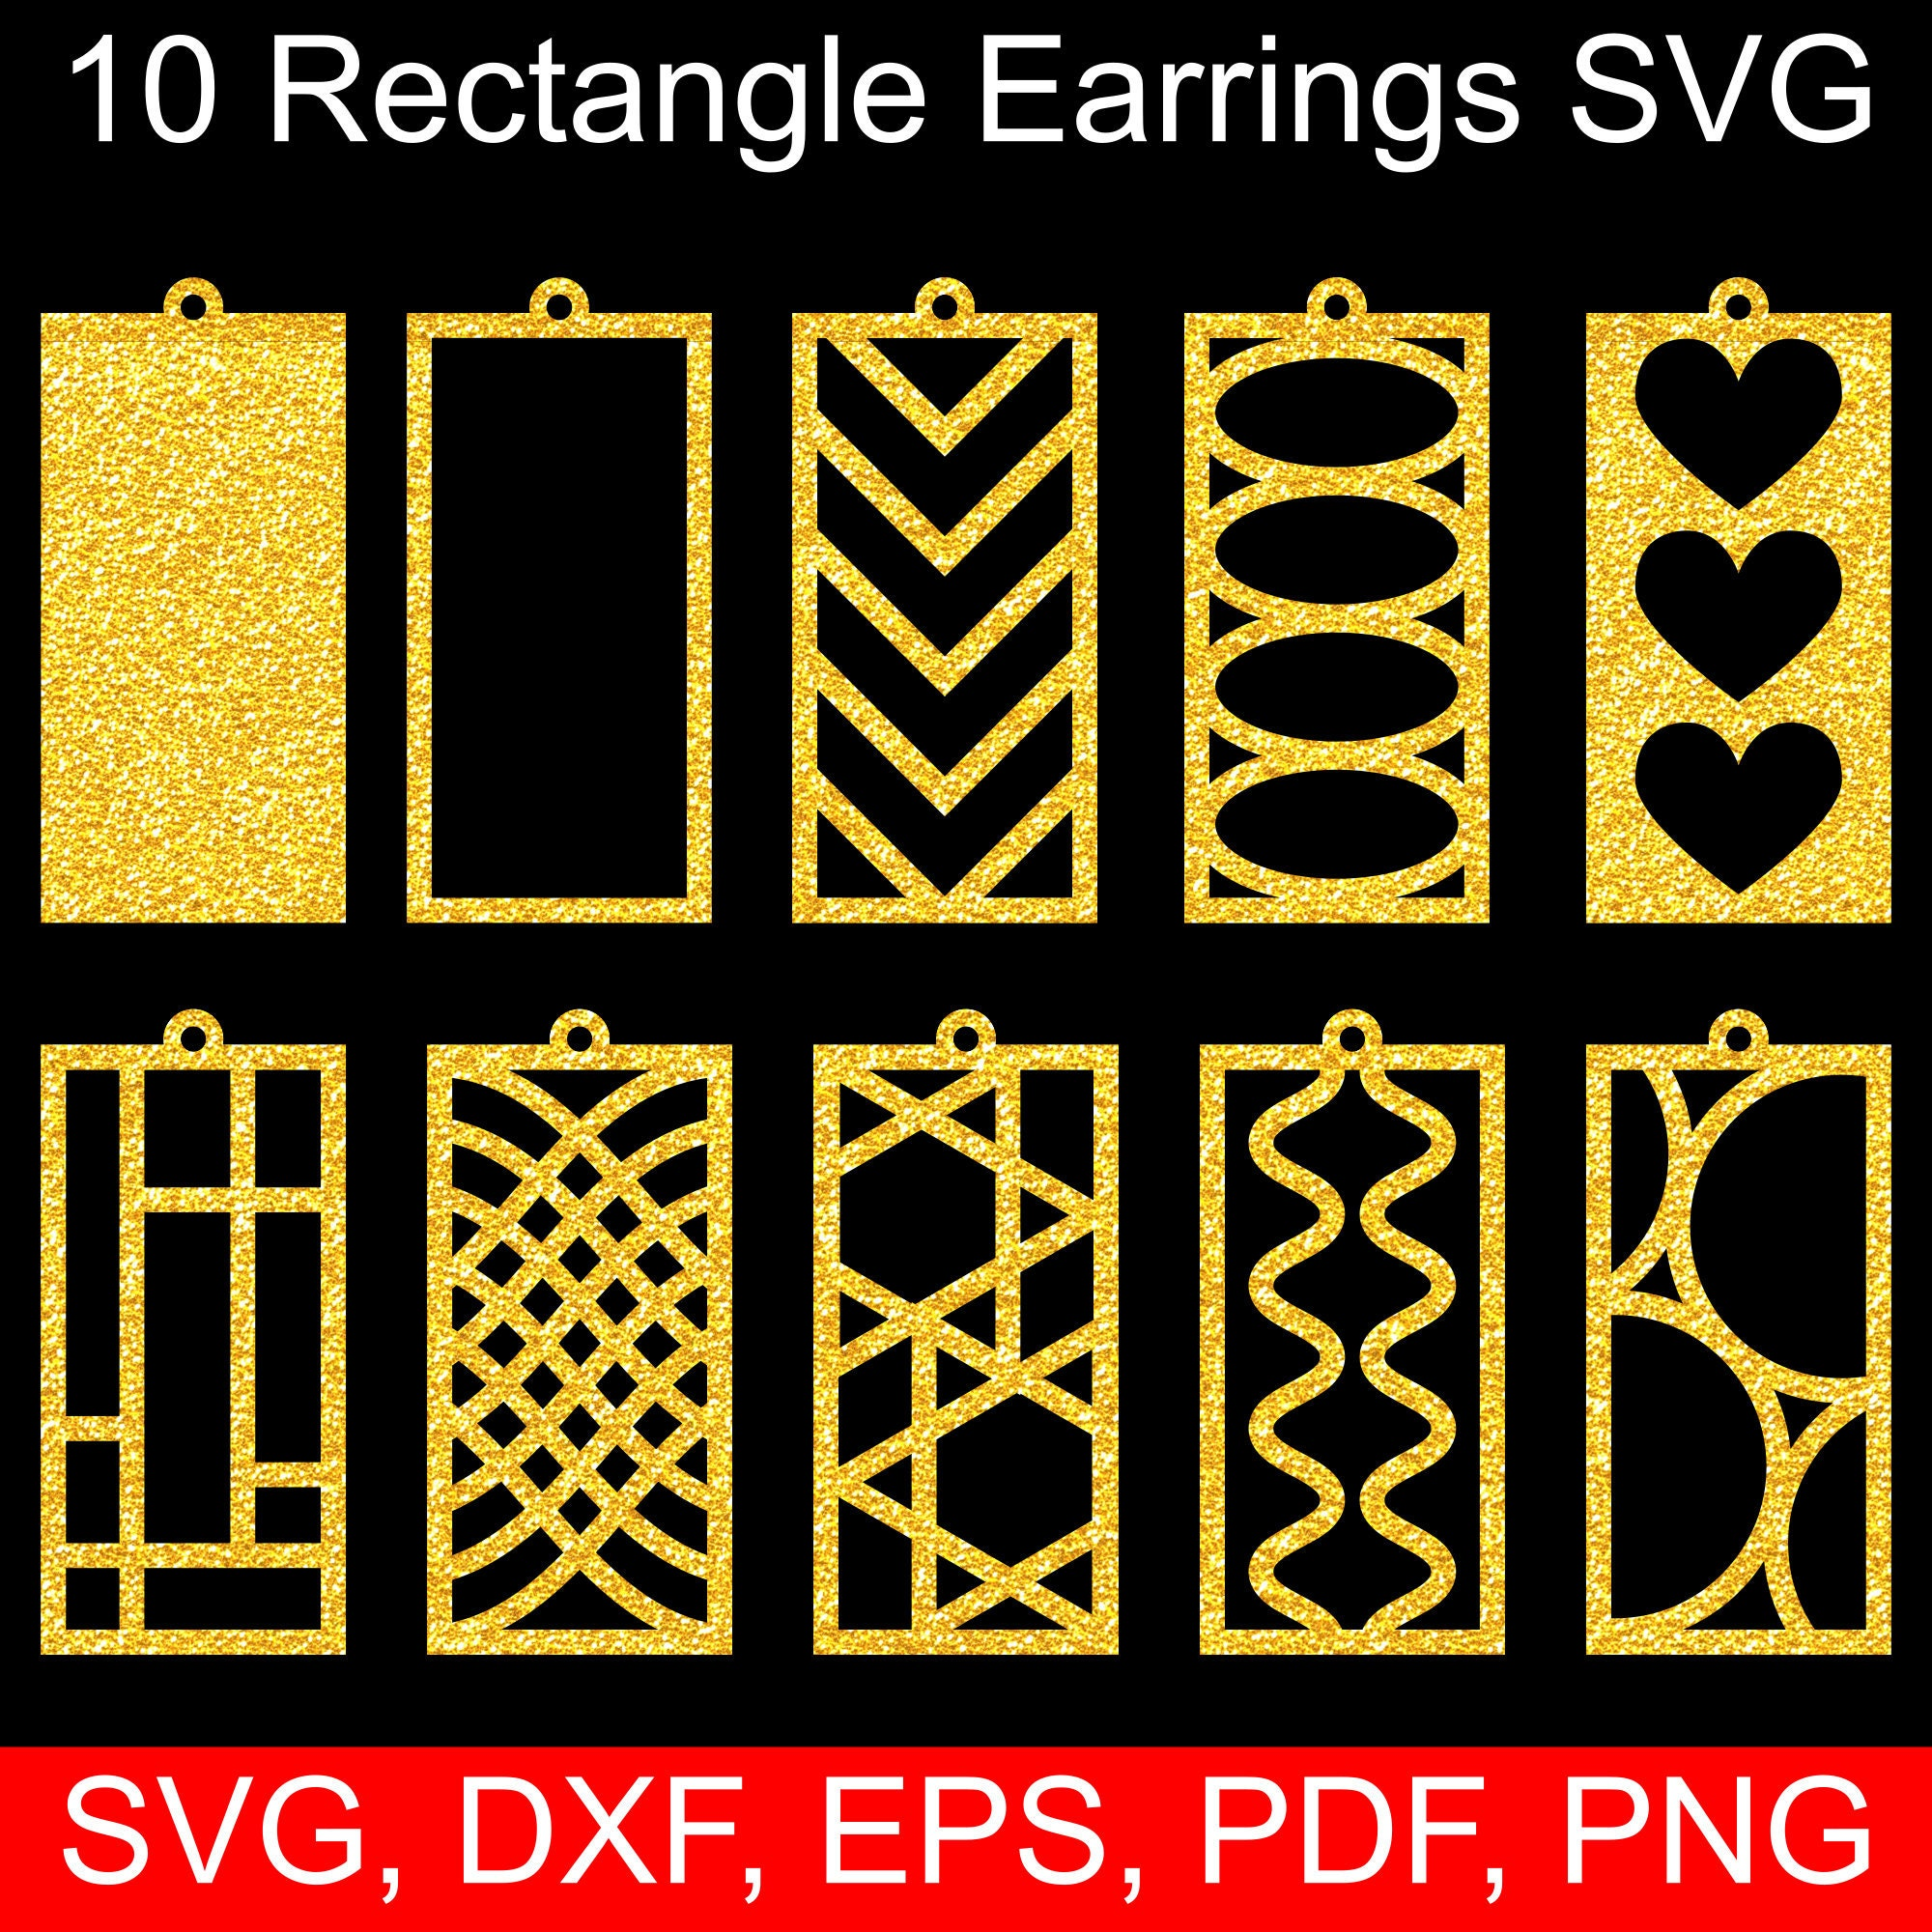 Rectangle earrings SVG